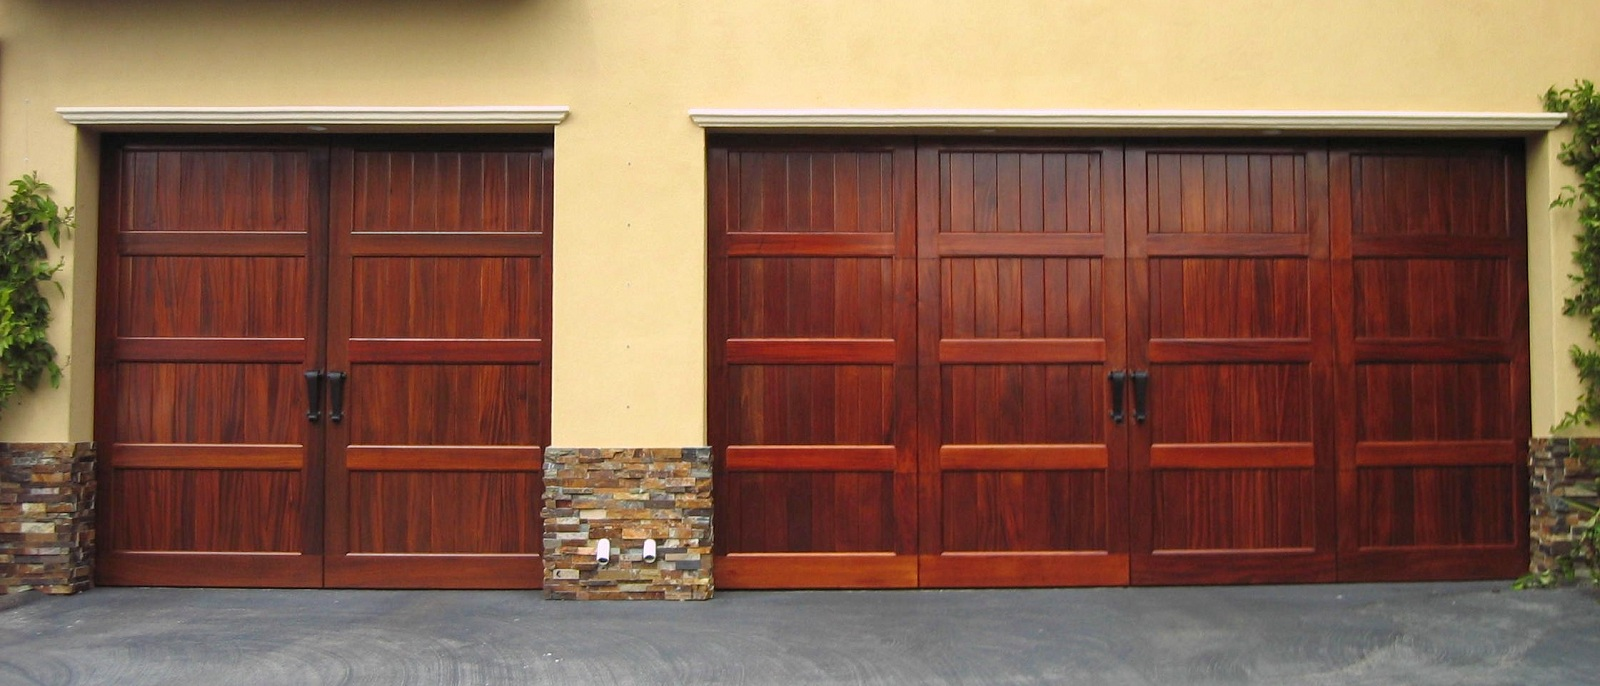 Garage Door Installation | Garage Door Repair | A Plus Garage Doors